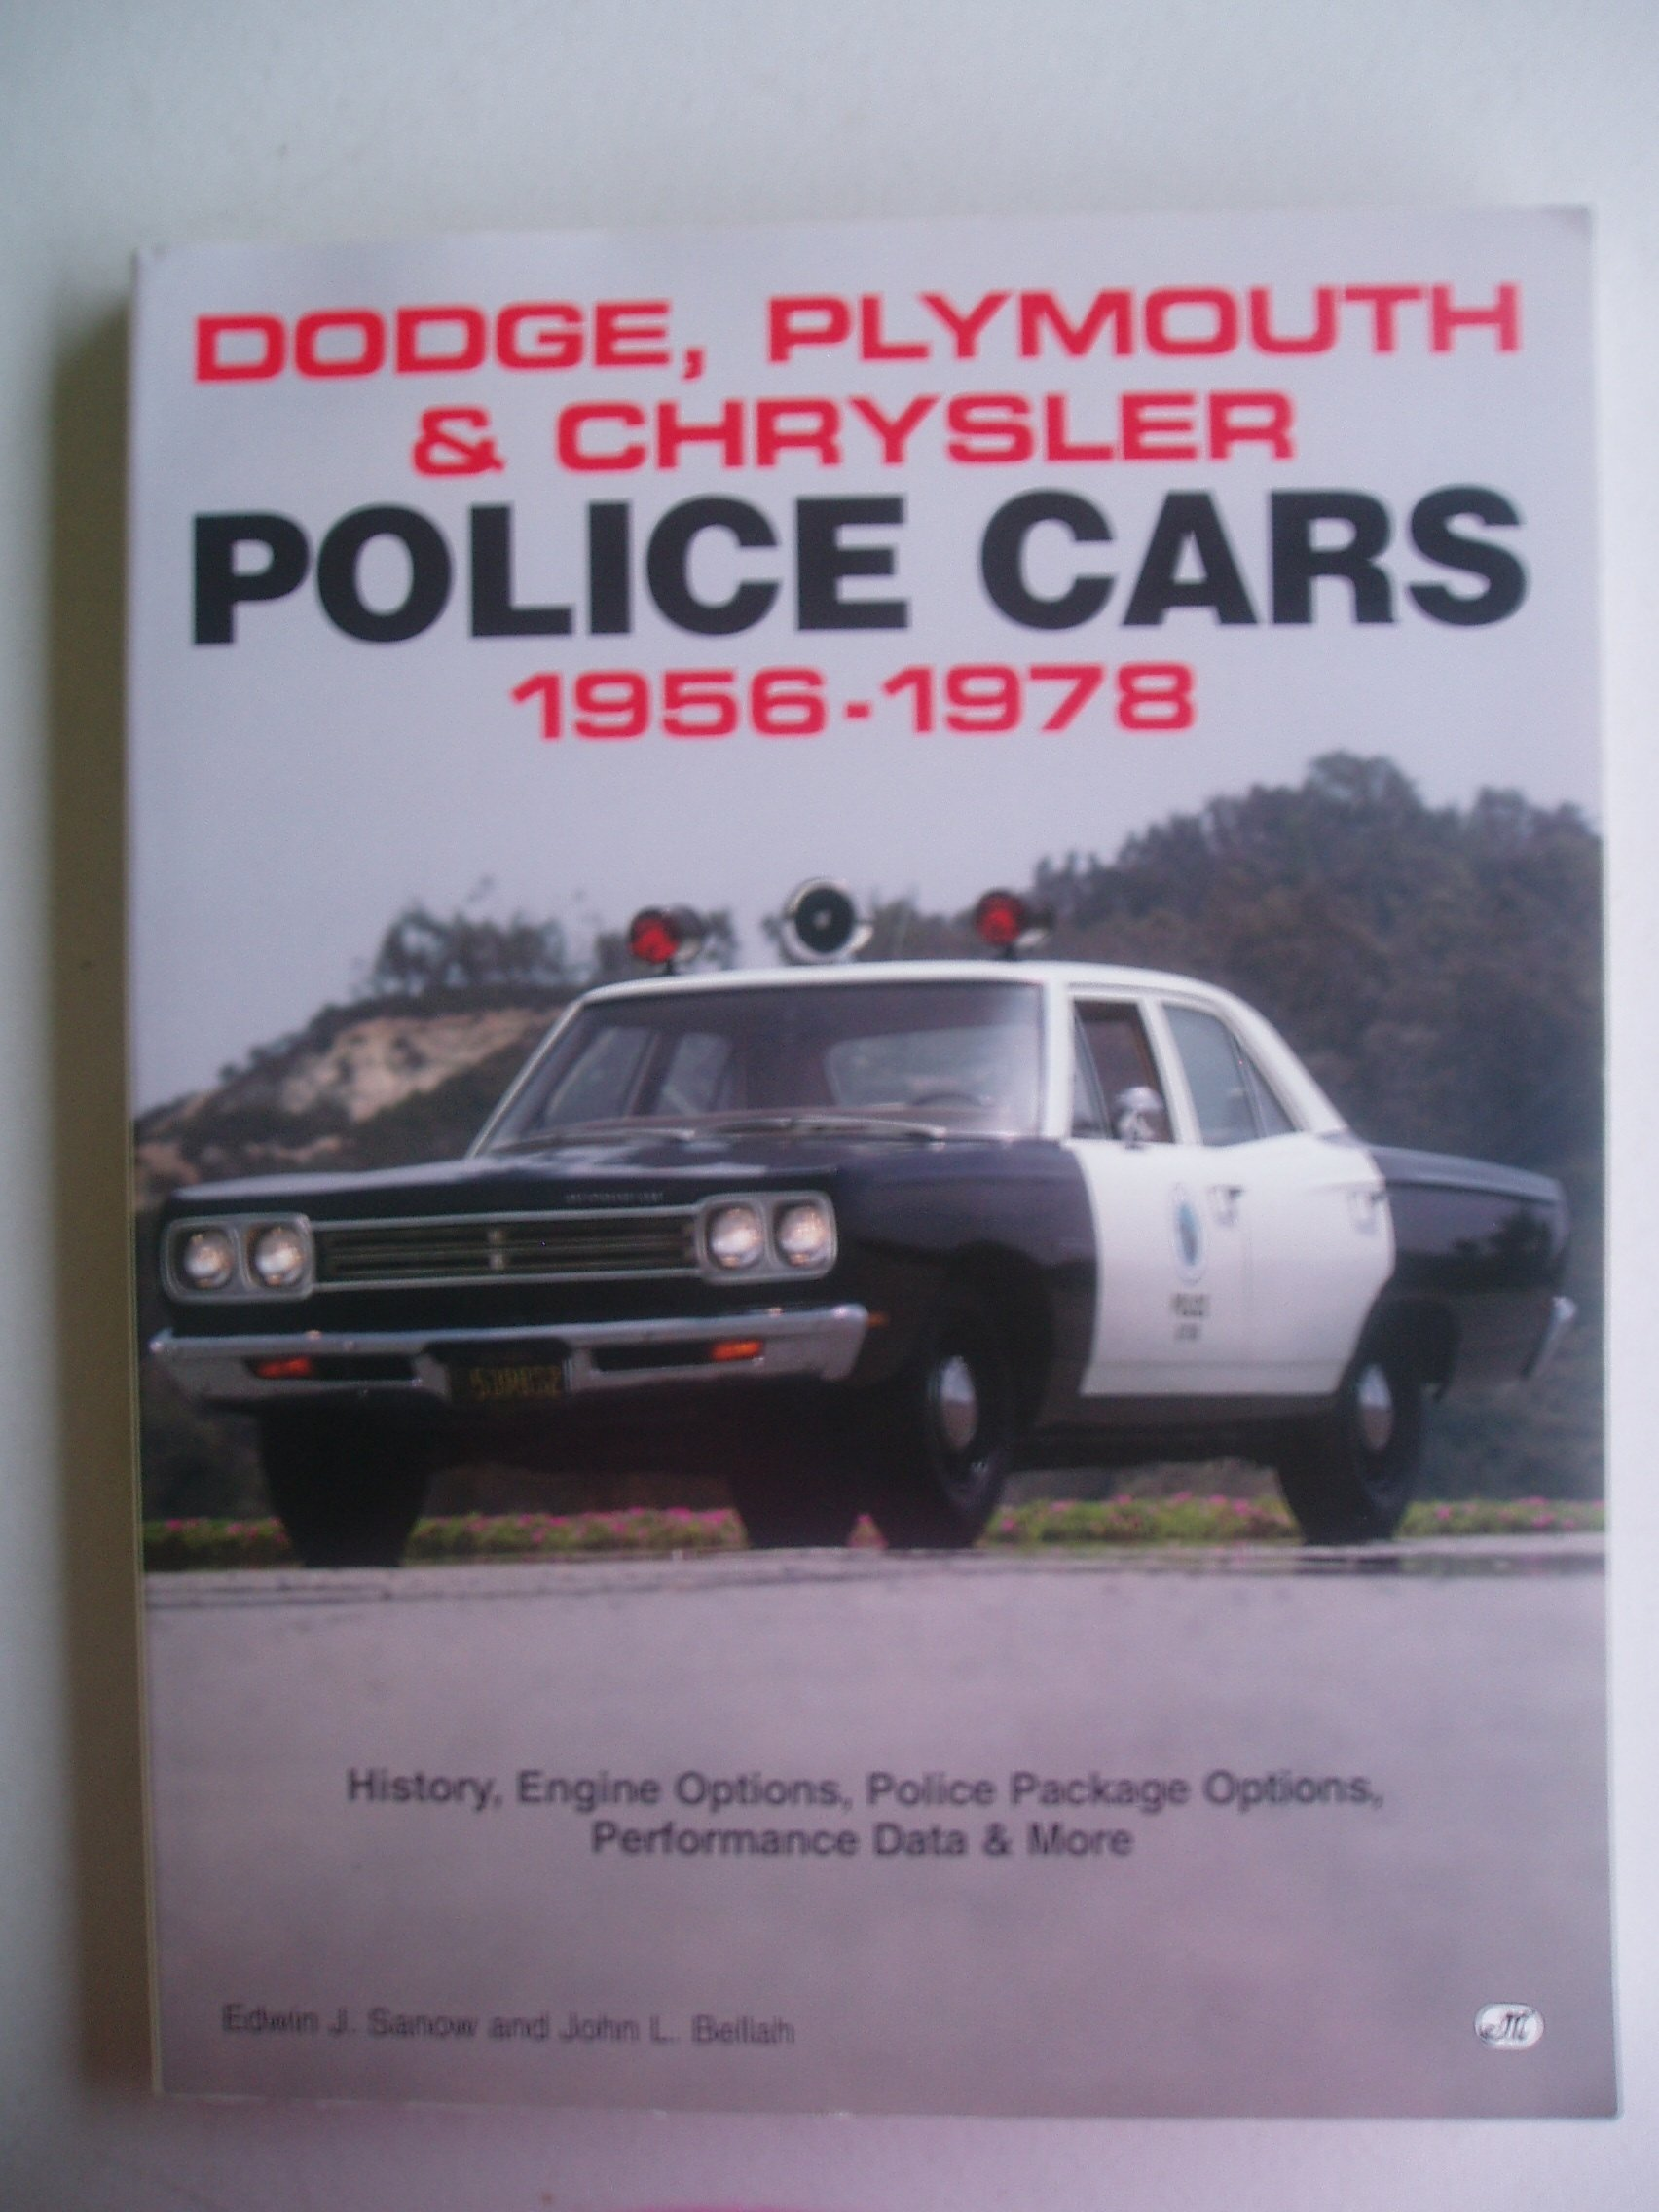 Dodge, Plymouth & Chrysler Police Cars 1956-1978